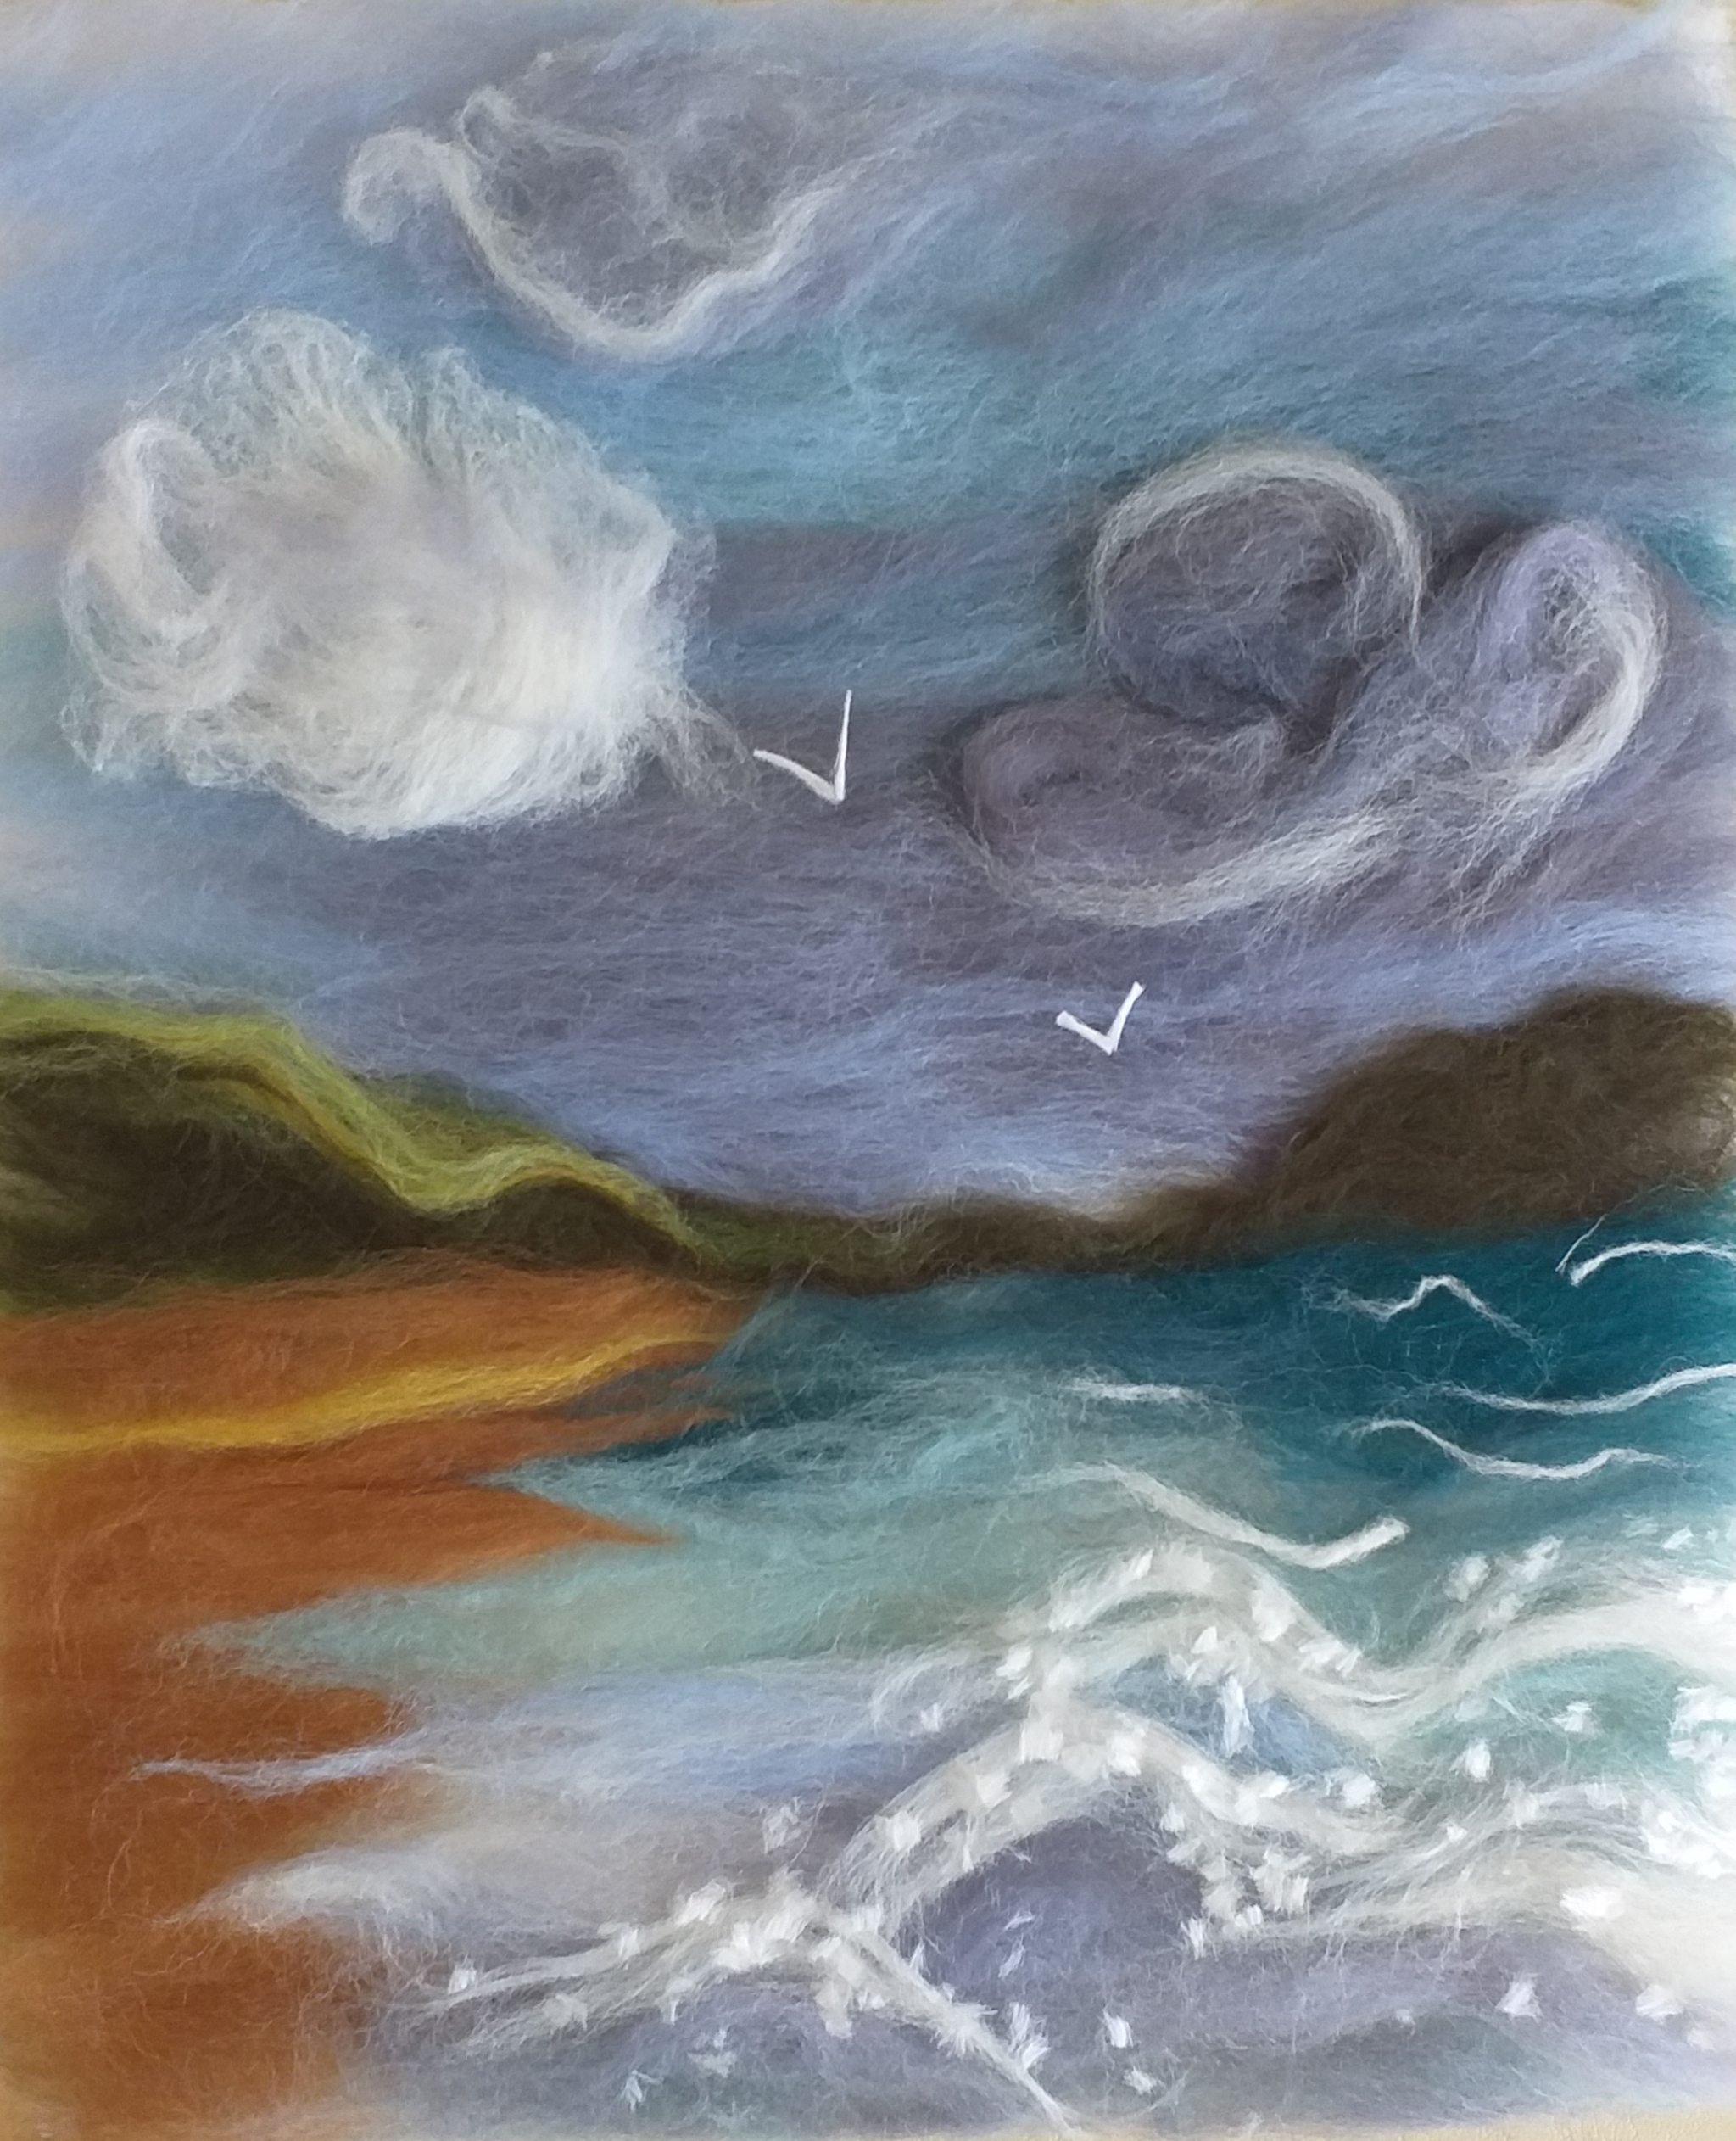 Wool painting created at Magic Wool Art and Craft Studio in Worcestershire